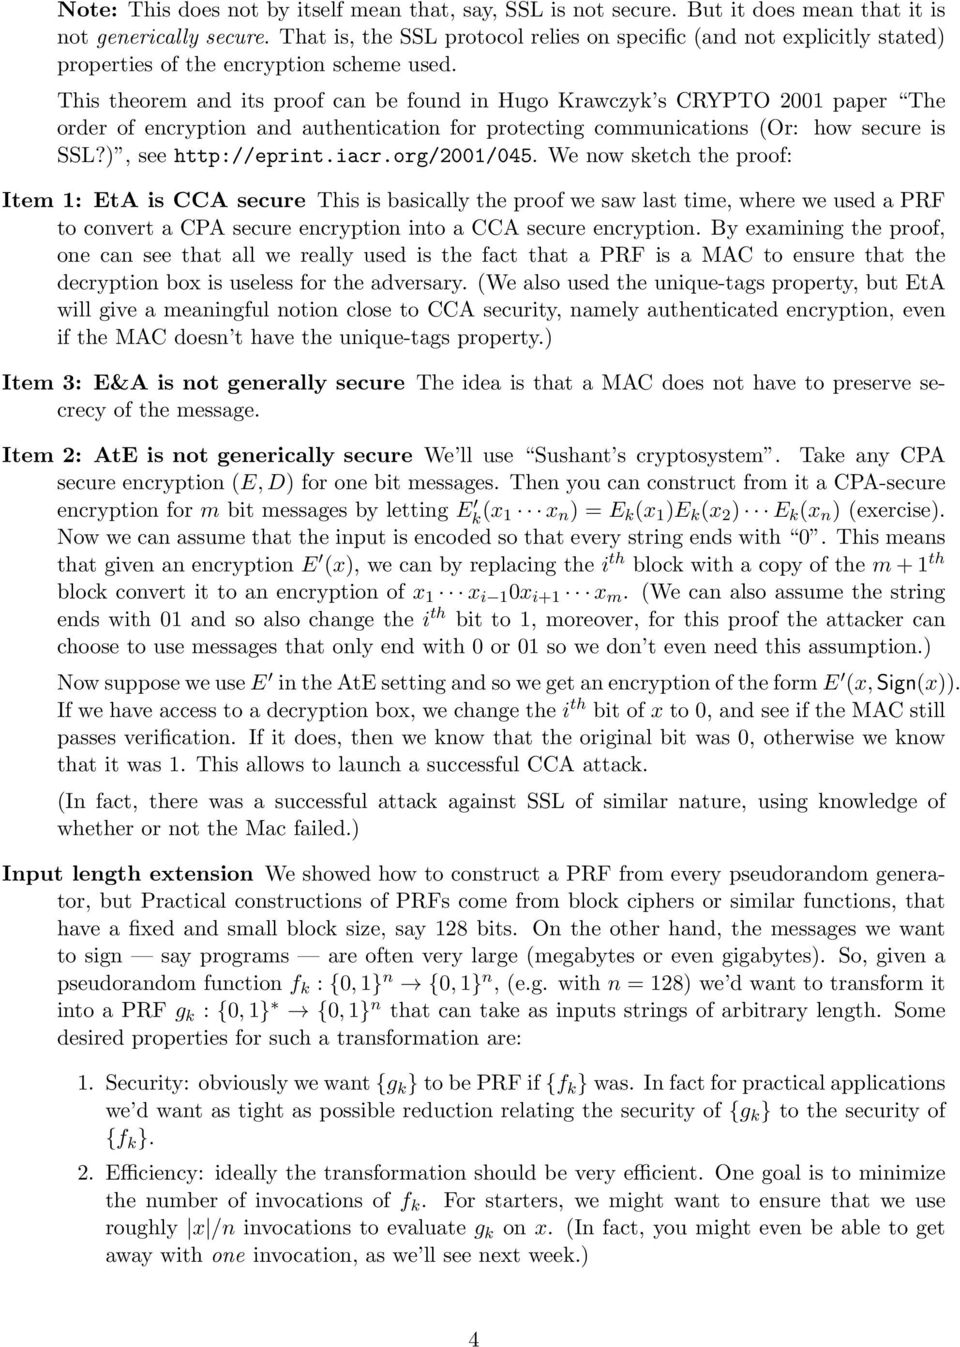 This theorem and its proof can be found in Hugo Krawczyk s CRYPTO 2001 paper The order of encryption and authentication for protecting communications (Or: how secure is SSL?), see http://eprint.iacr.